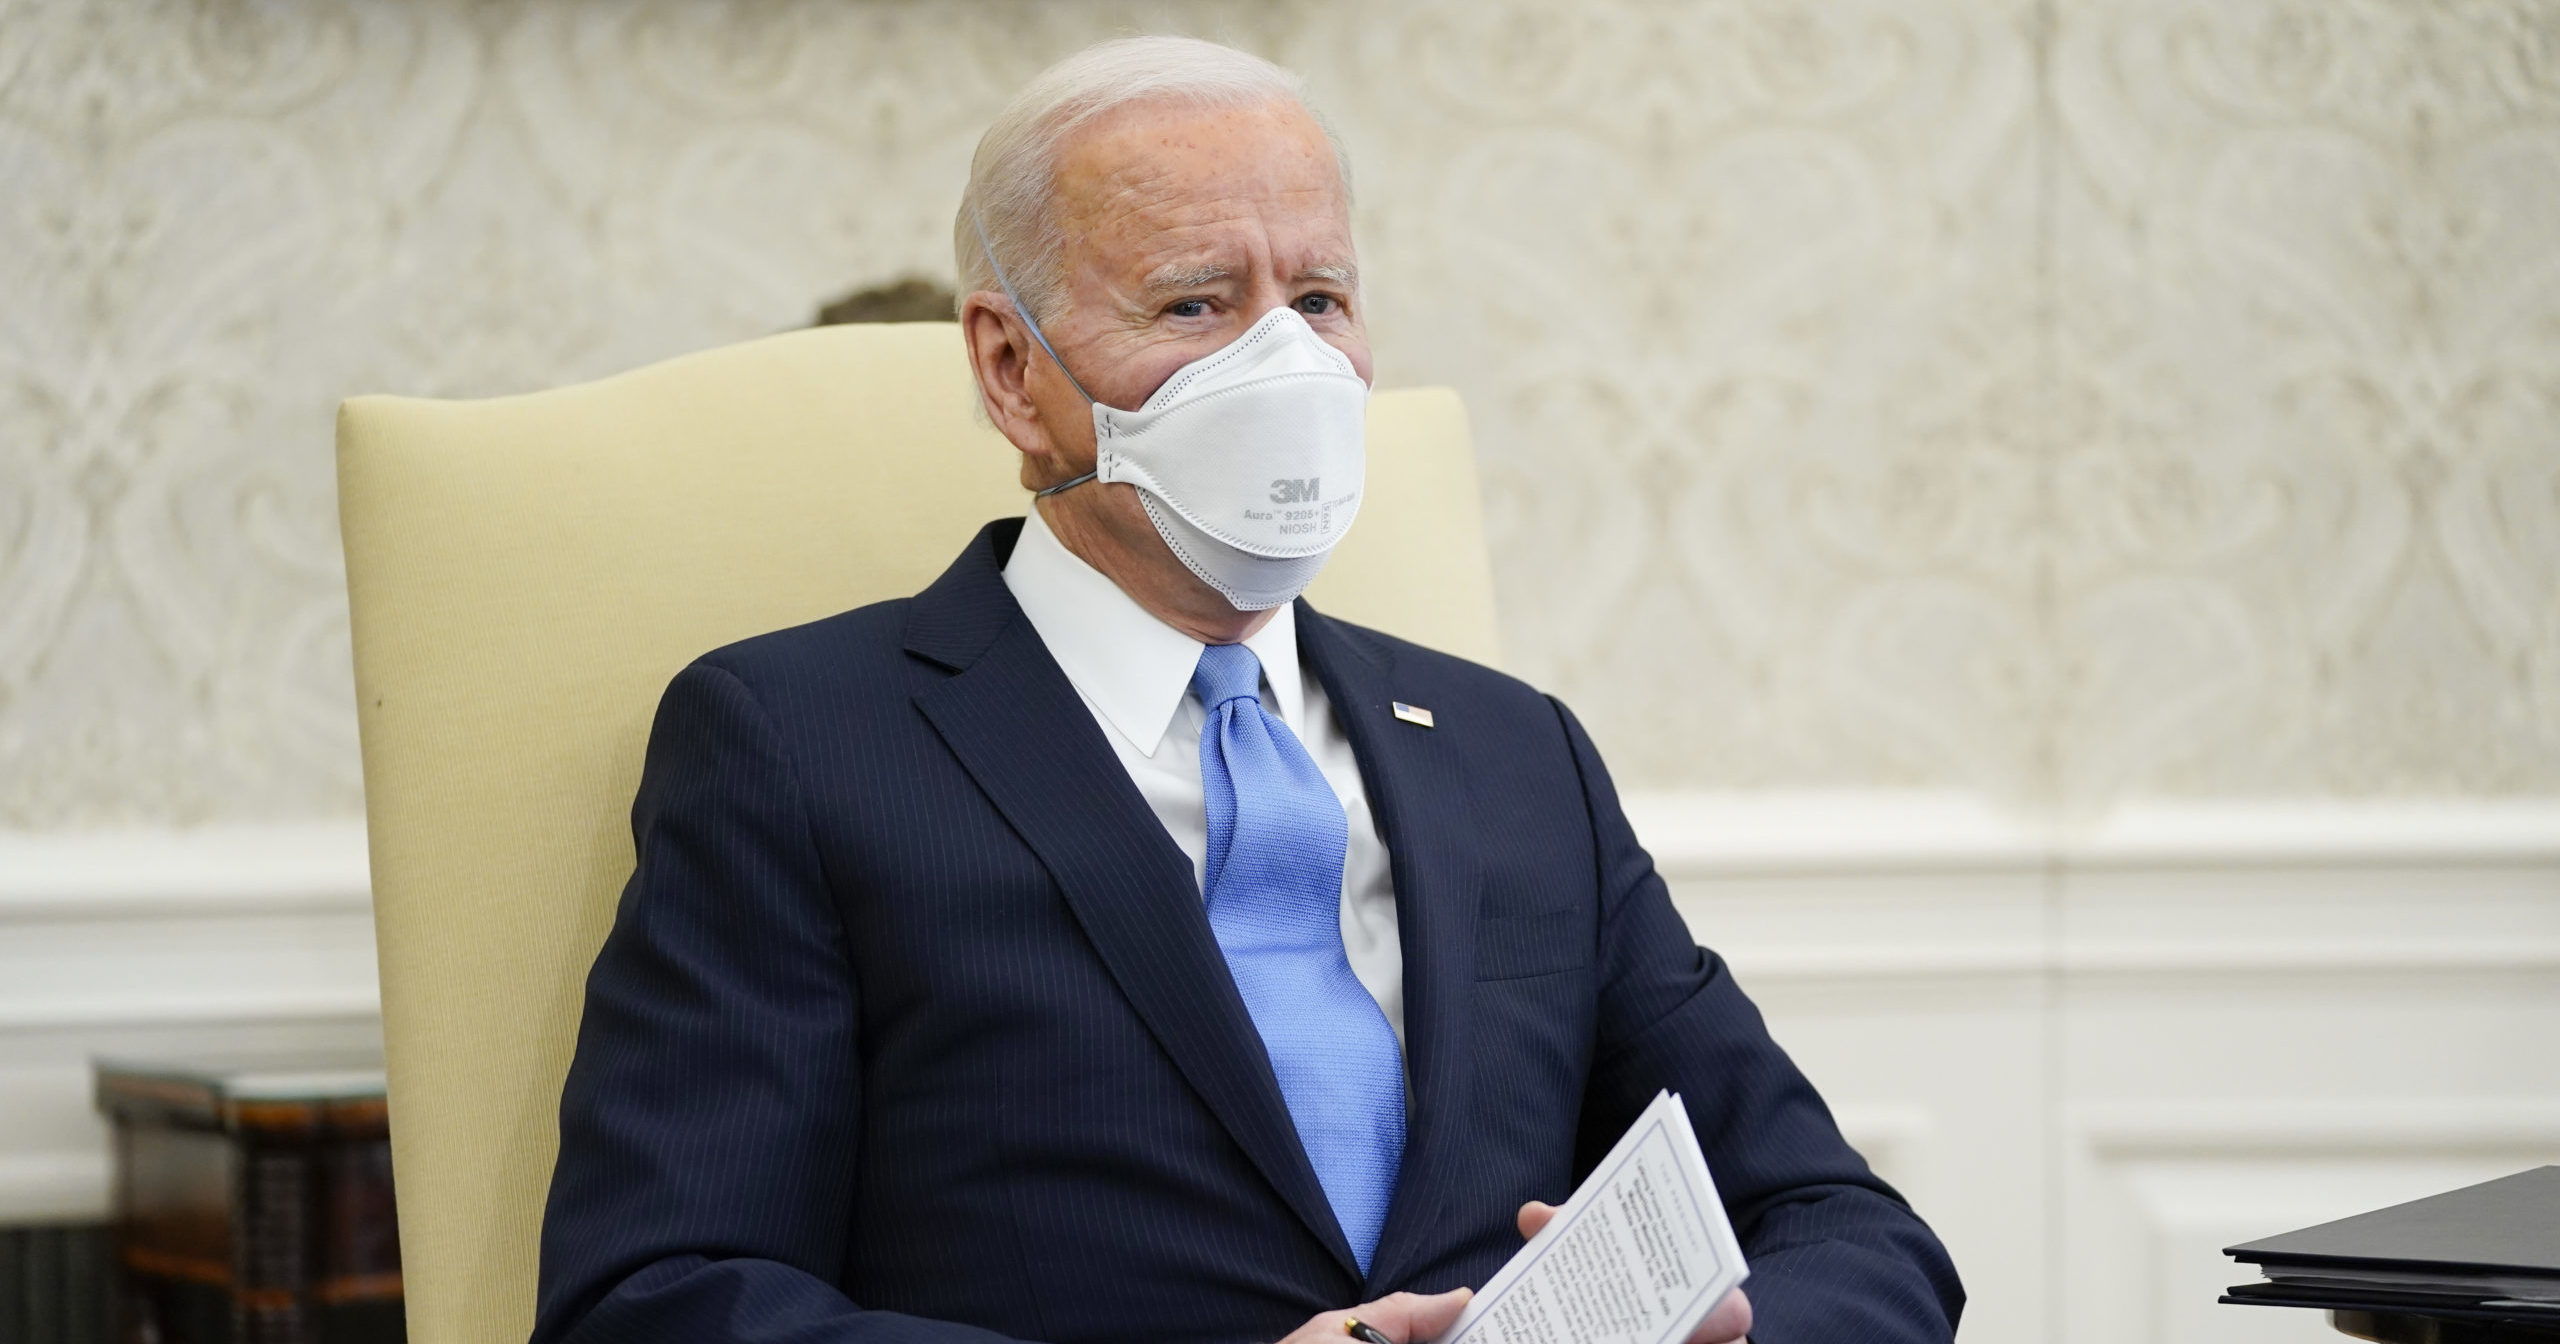 President Joe Biden speaks during a meeting in the Oval Office of the White House on Feb. 12, 2021, in Washington, D.C.